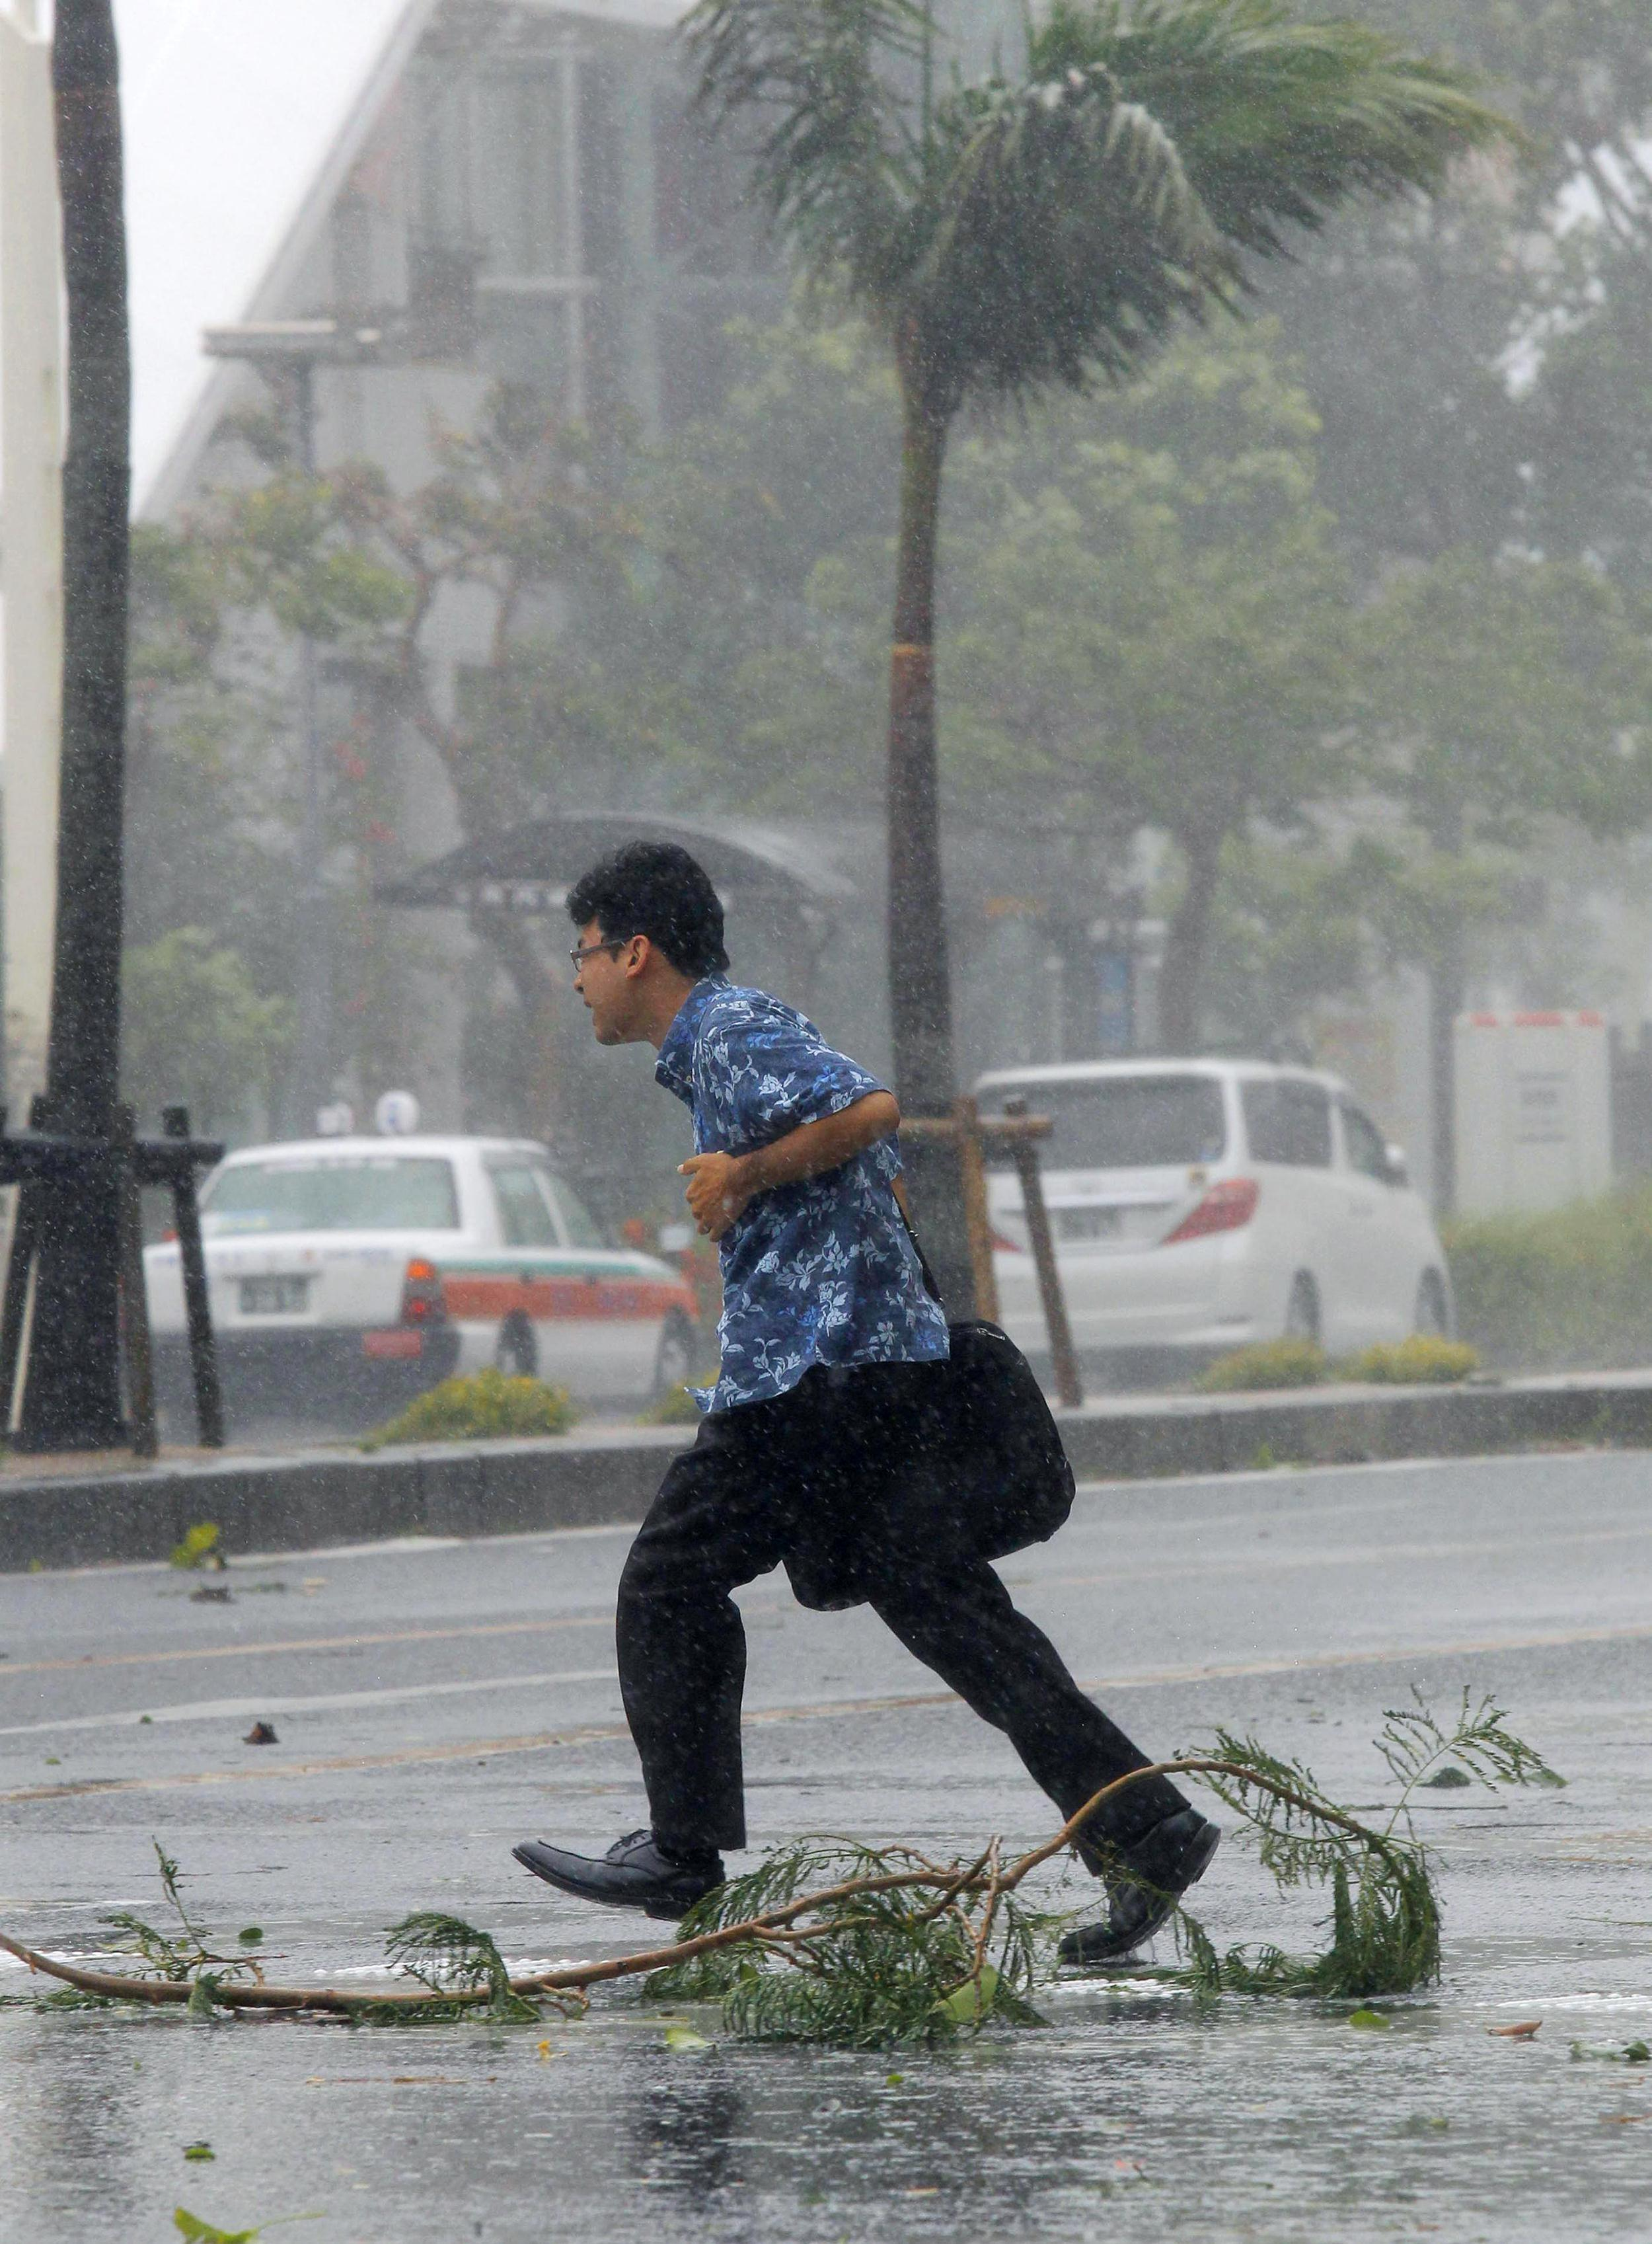 Image: A man walks across a street amid strong winds in Naha, Okinawa, southern Japan,